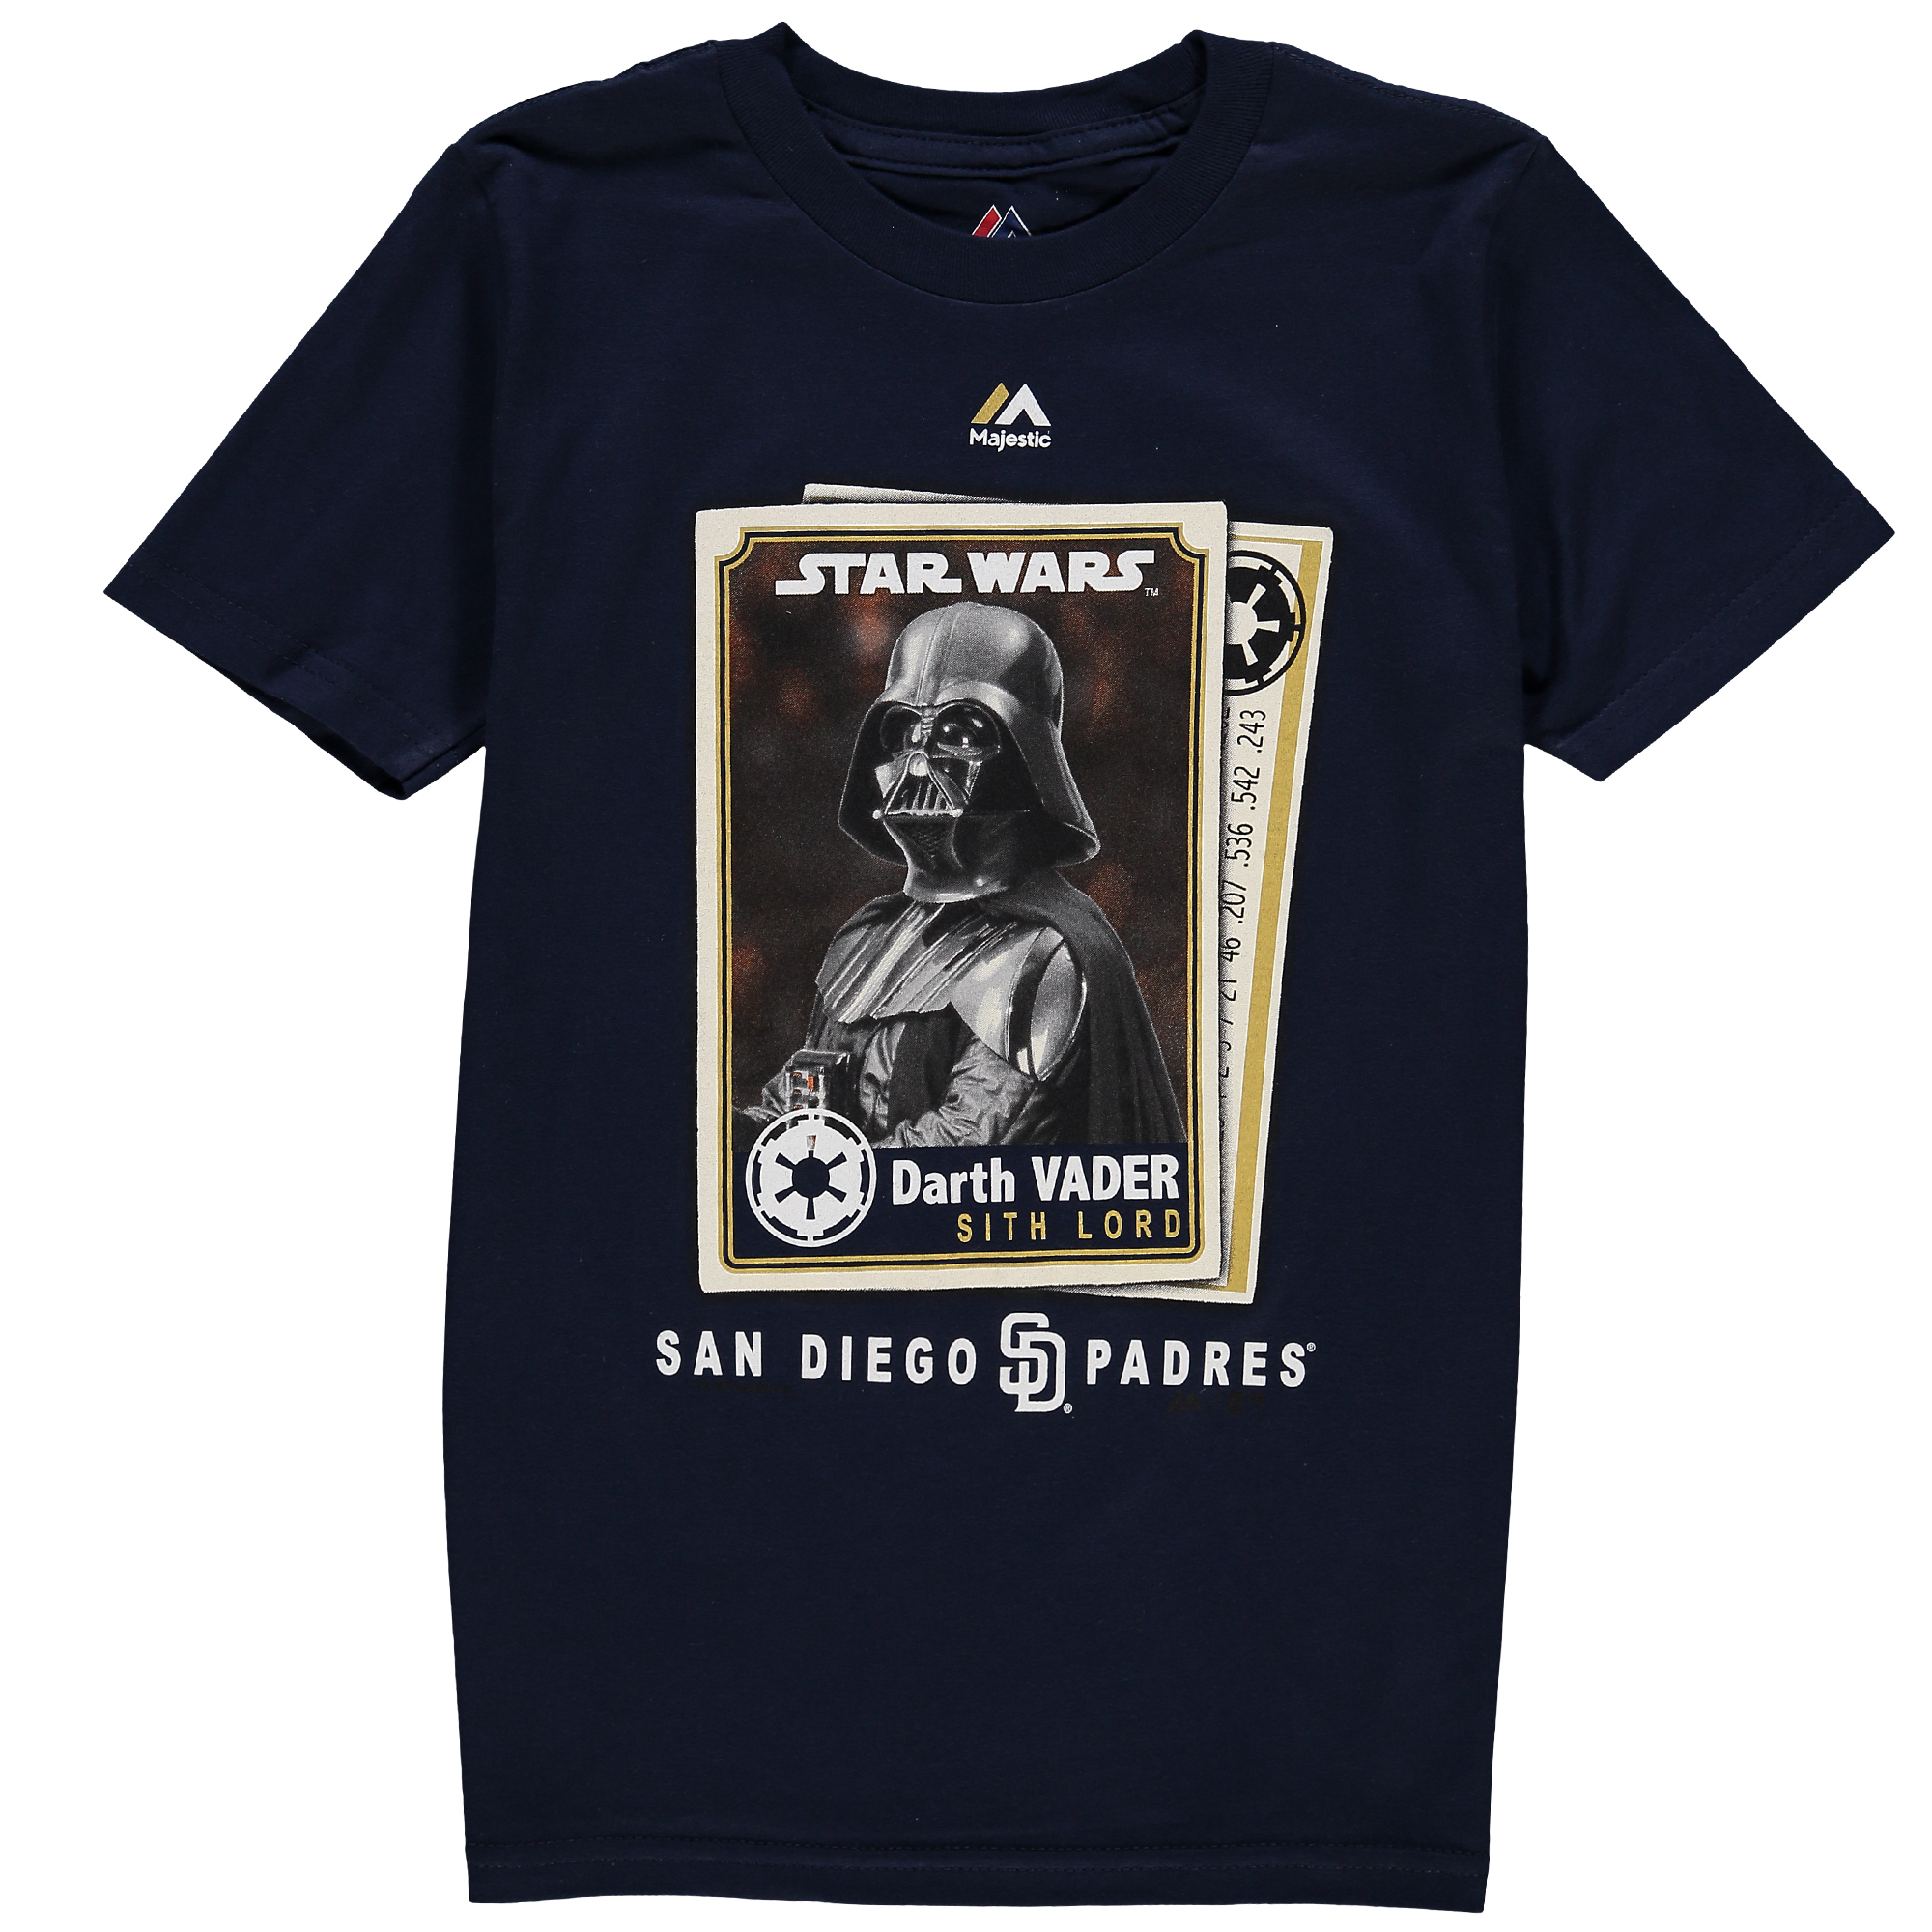 San Diego Padres Majestic Youth Star Wars Card T-Shirt - Navy